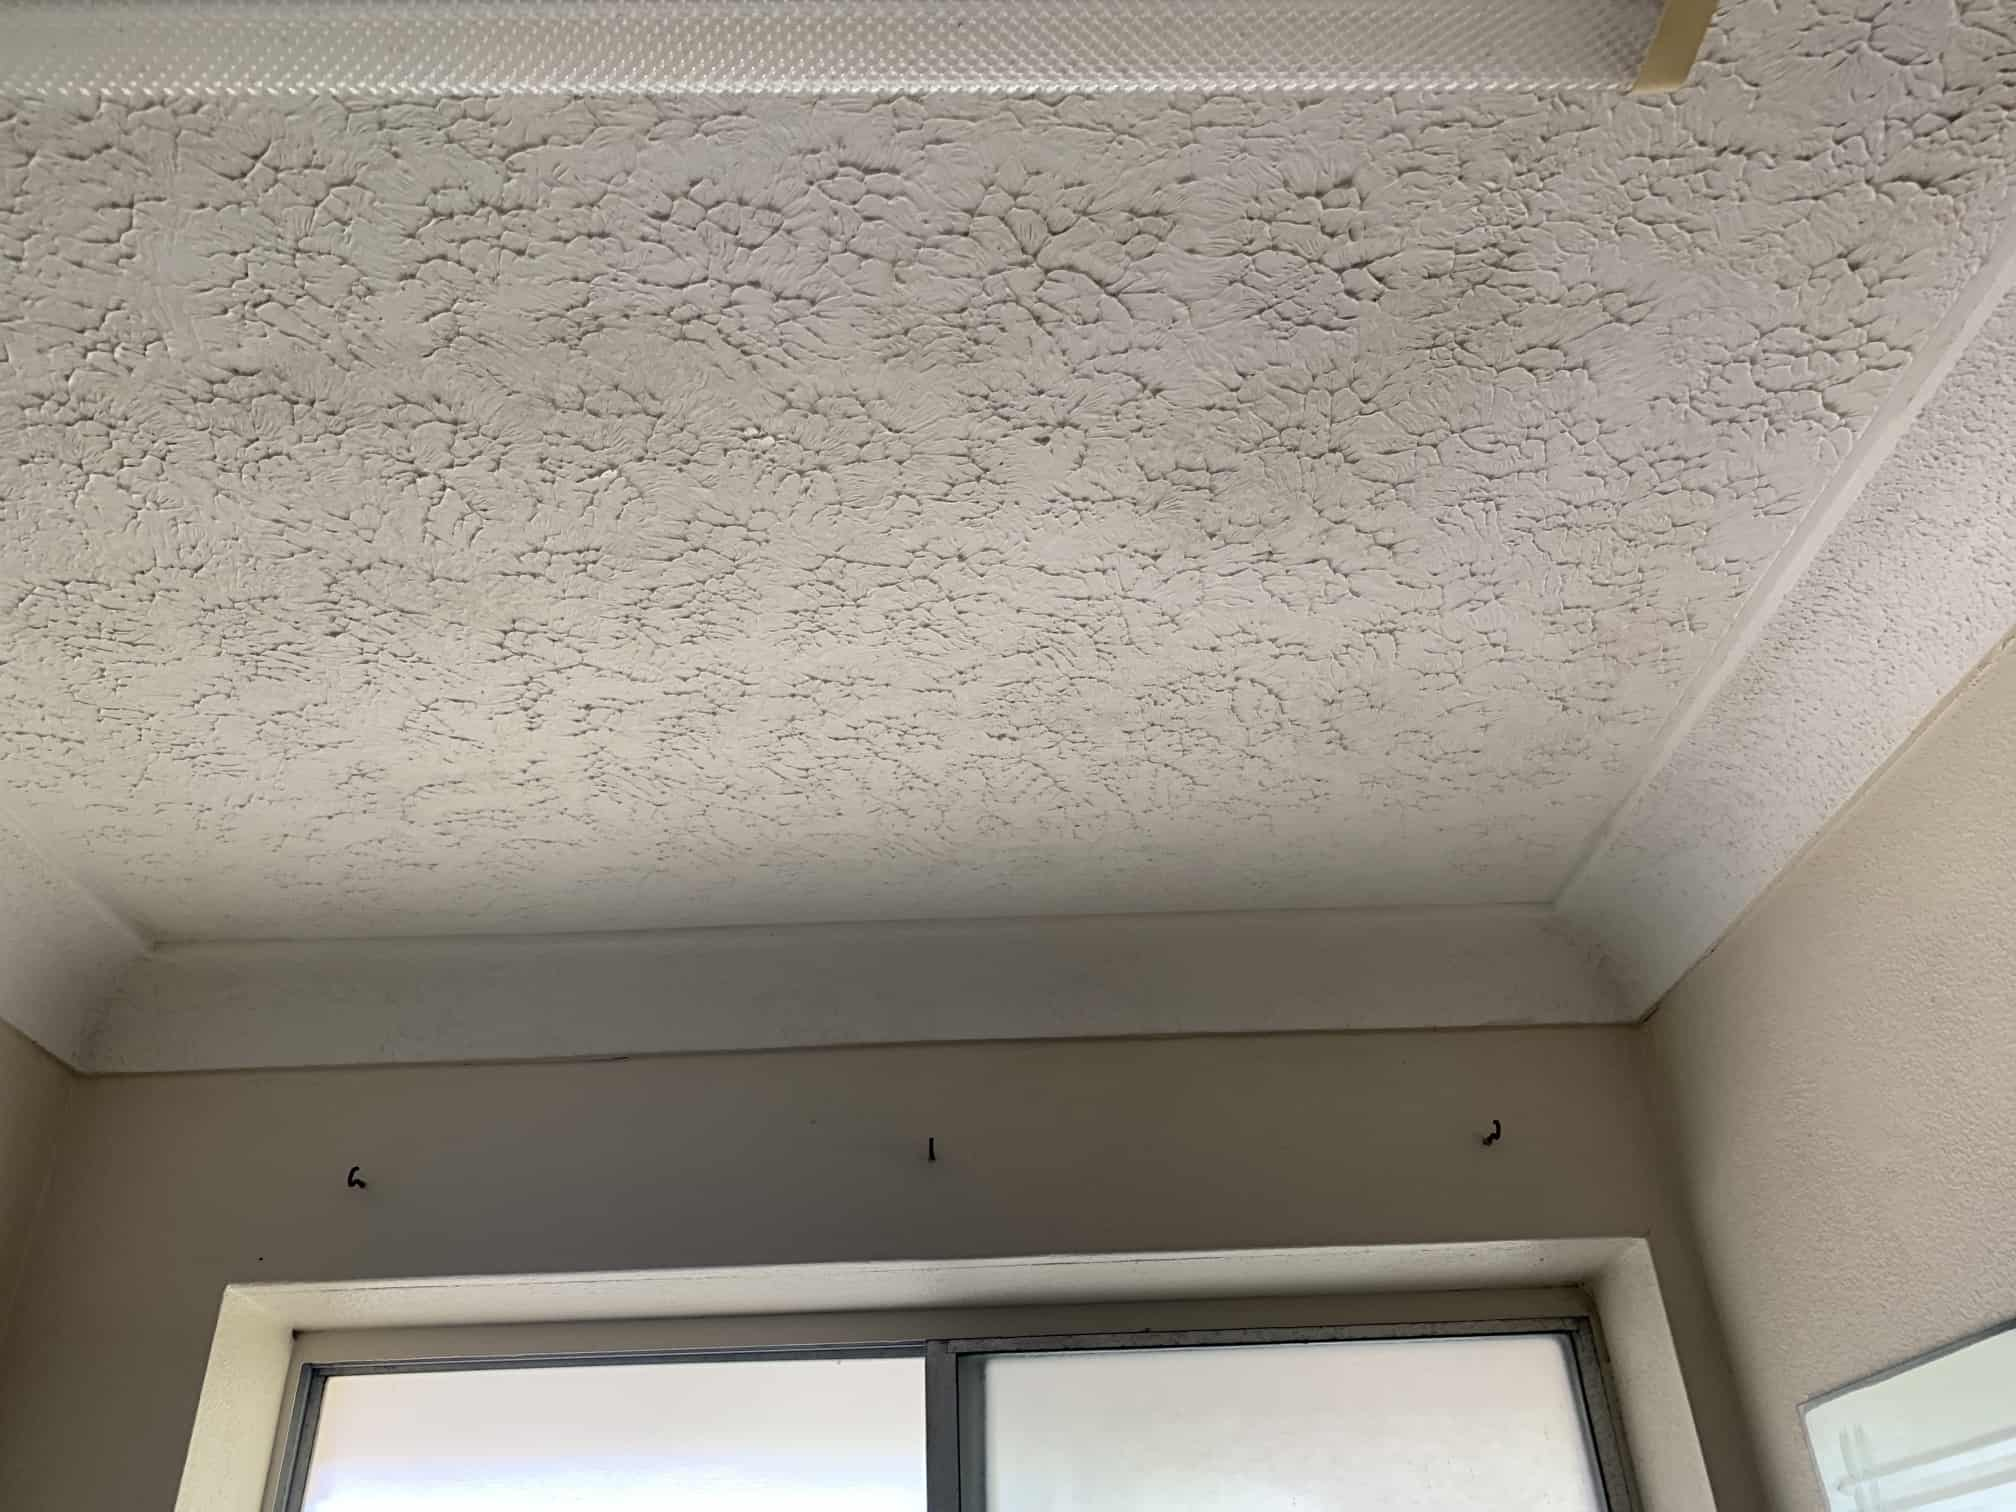 cracks in the ceiling